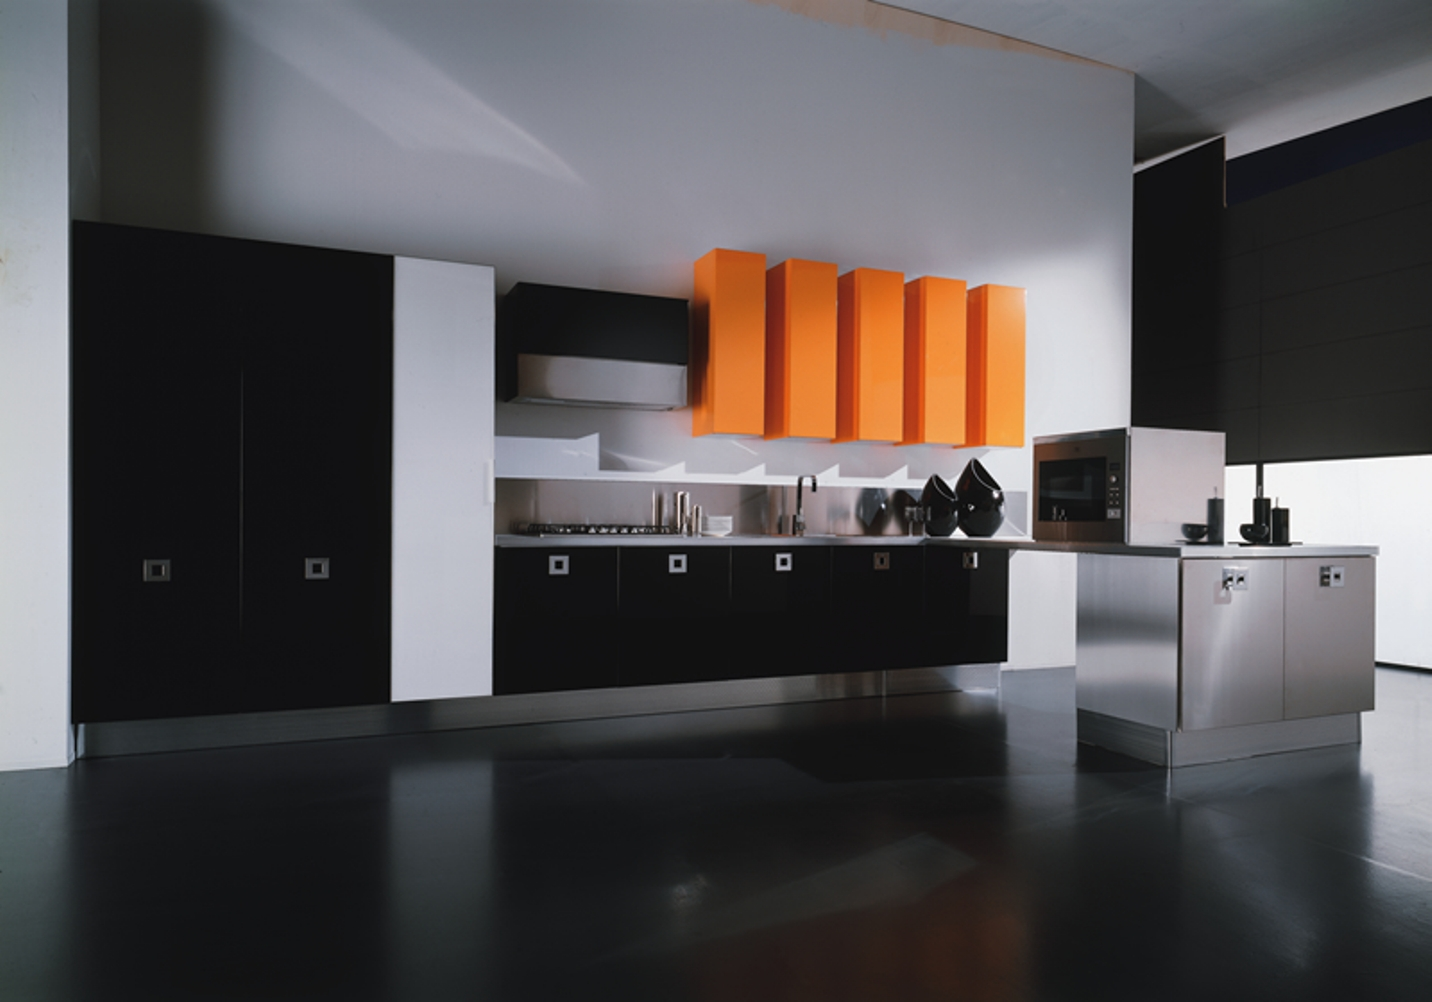 Dark yet Comfy Kitchen with Black Cabinets and Surpsising Orange Accents of Wall Storage